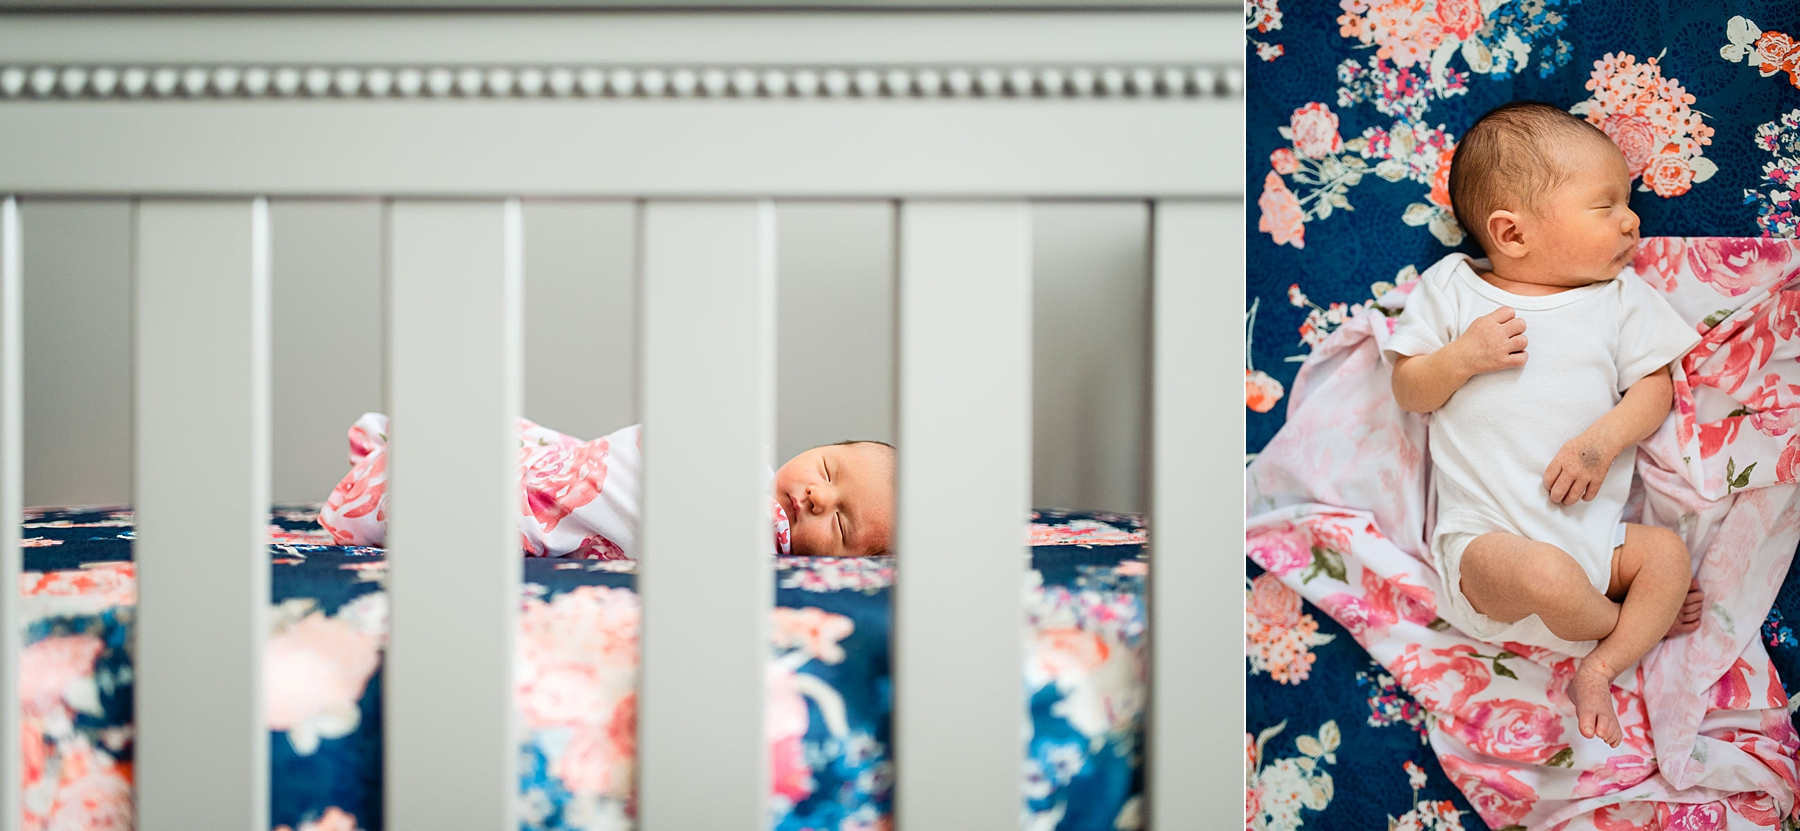 newborn baby girl sleeping in grey crib with floral sheets